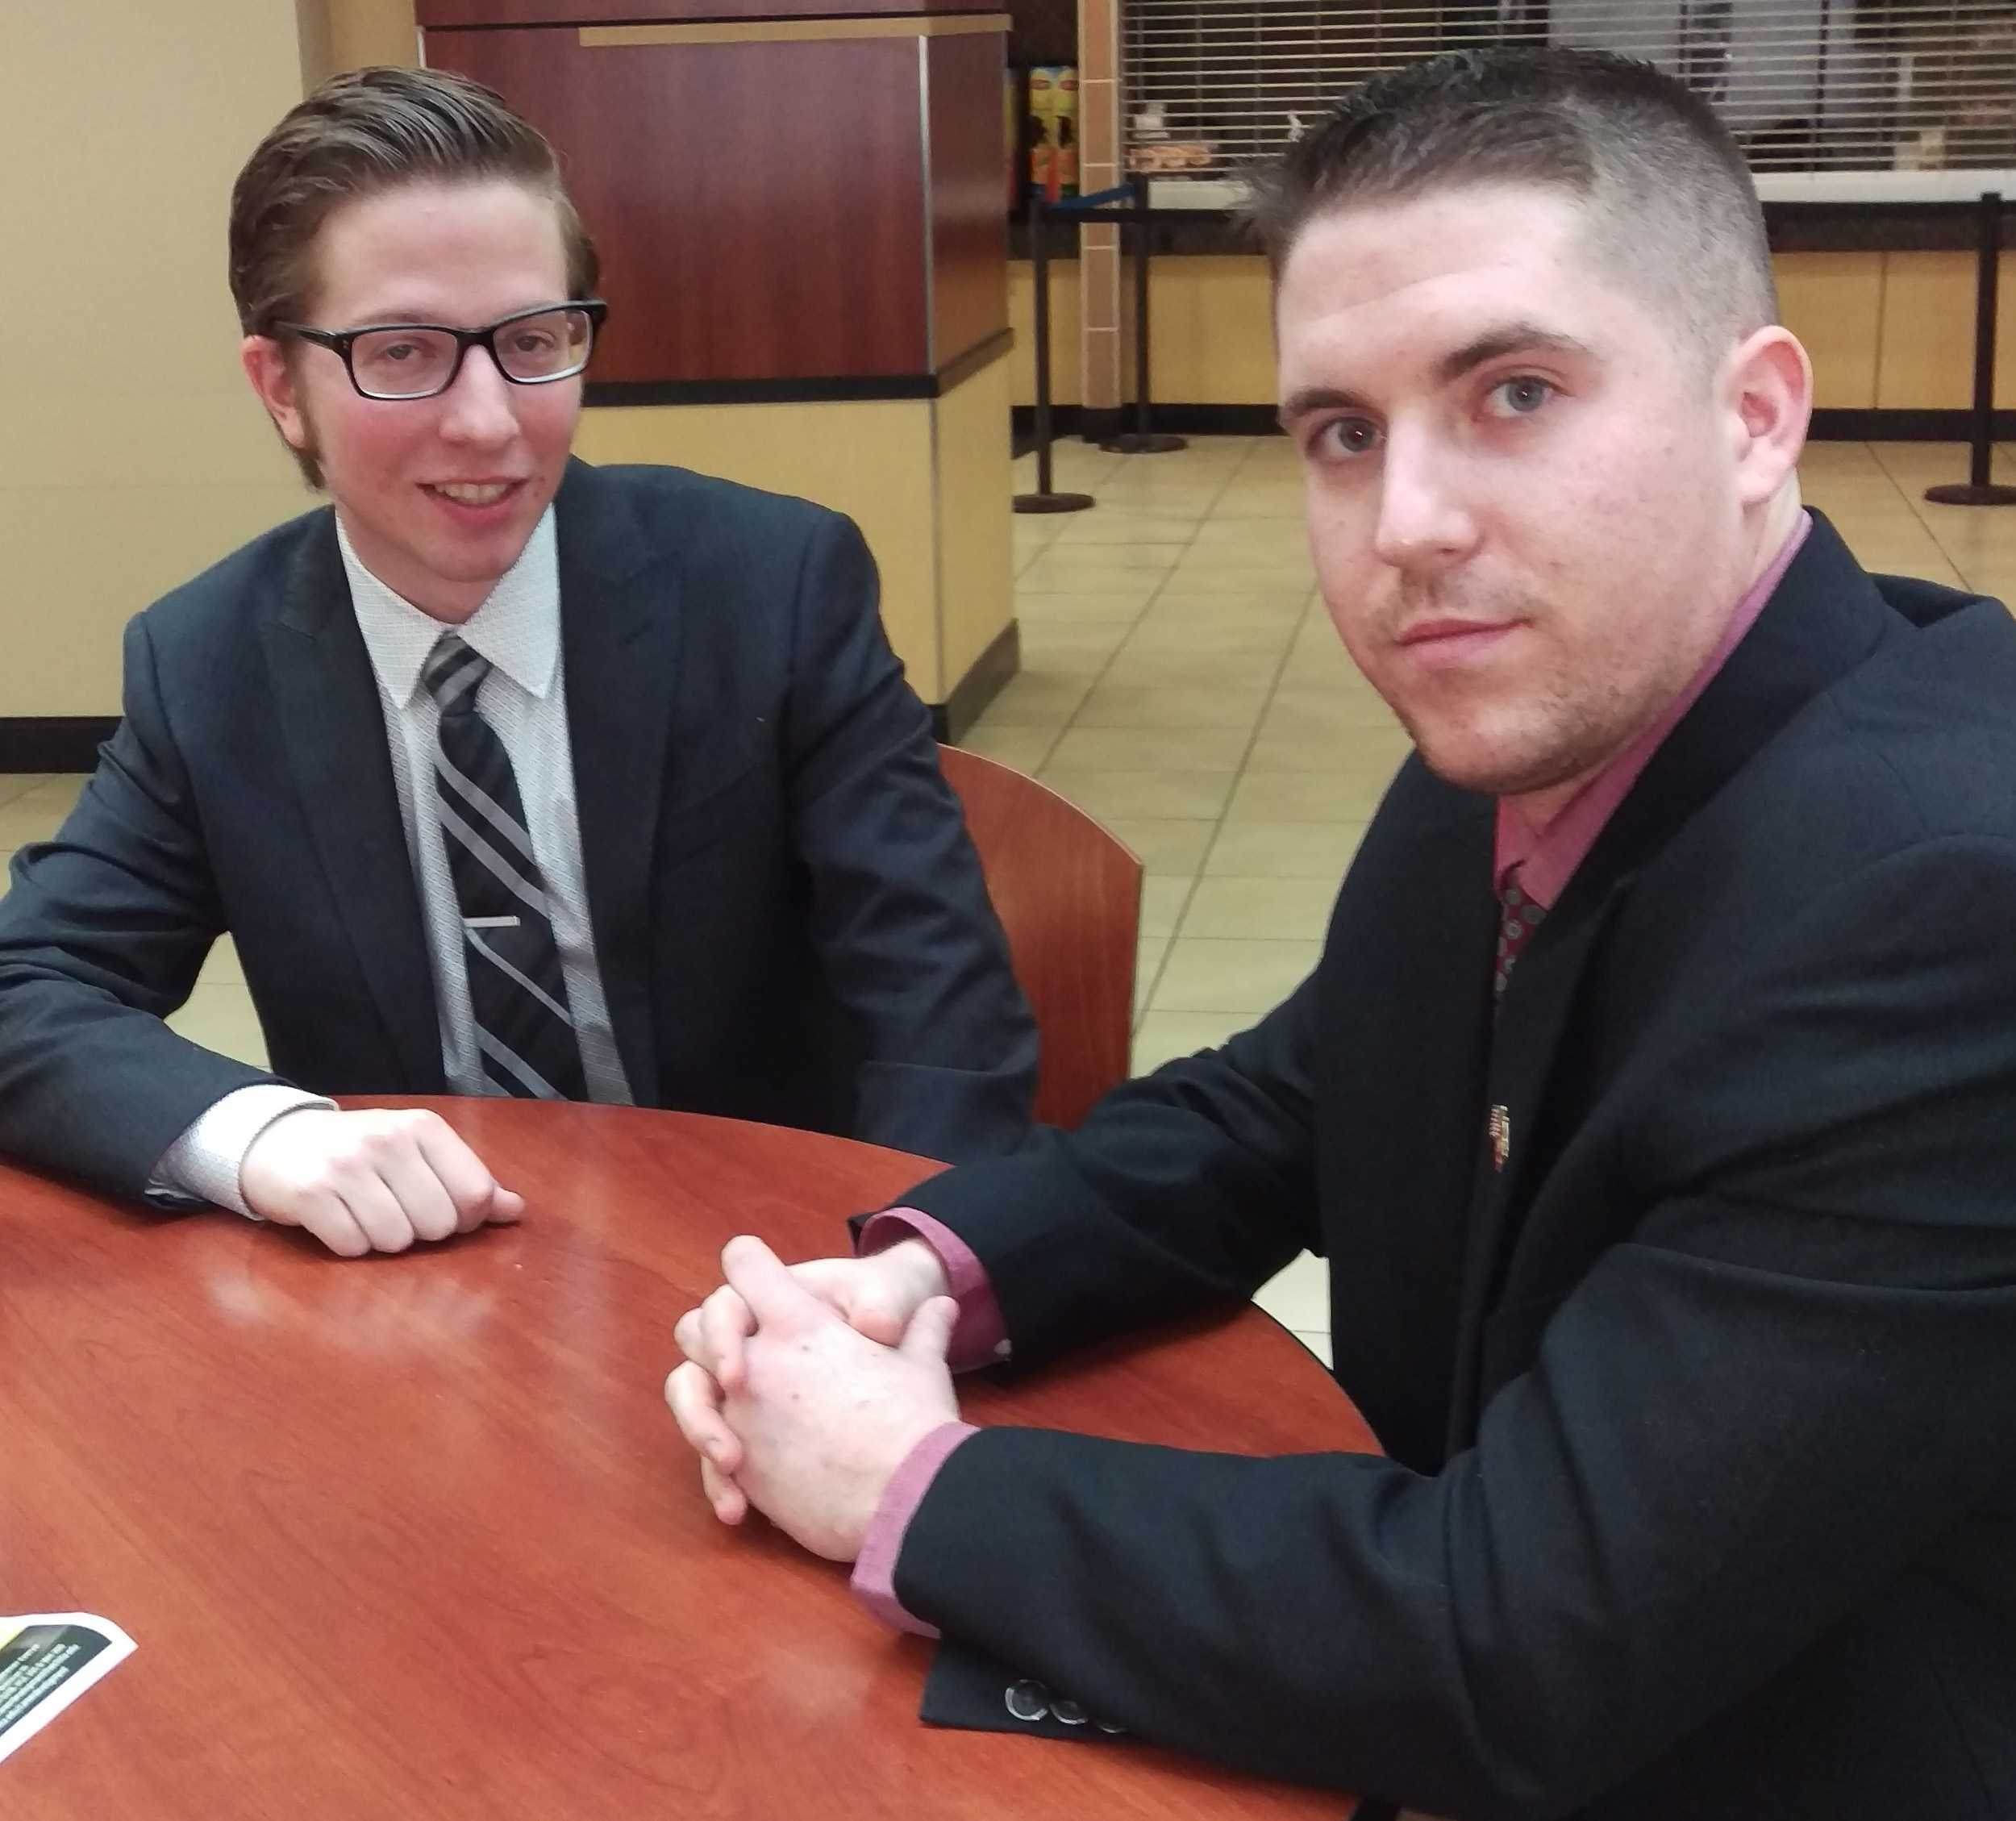 Cale Ostby, left, and Dan Corrieri talk about the issue of concealed carry on campus. (Feb. 15, 2017)